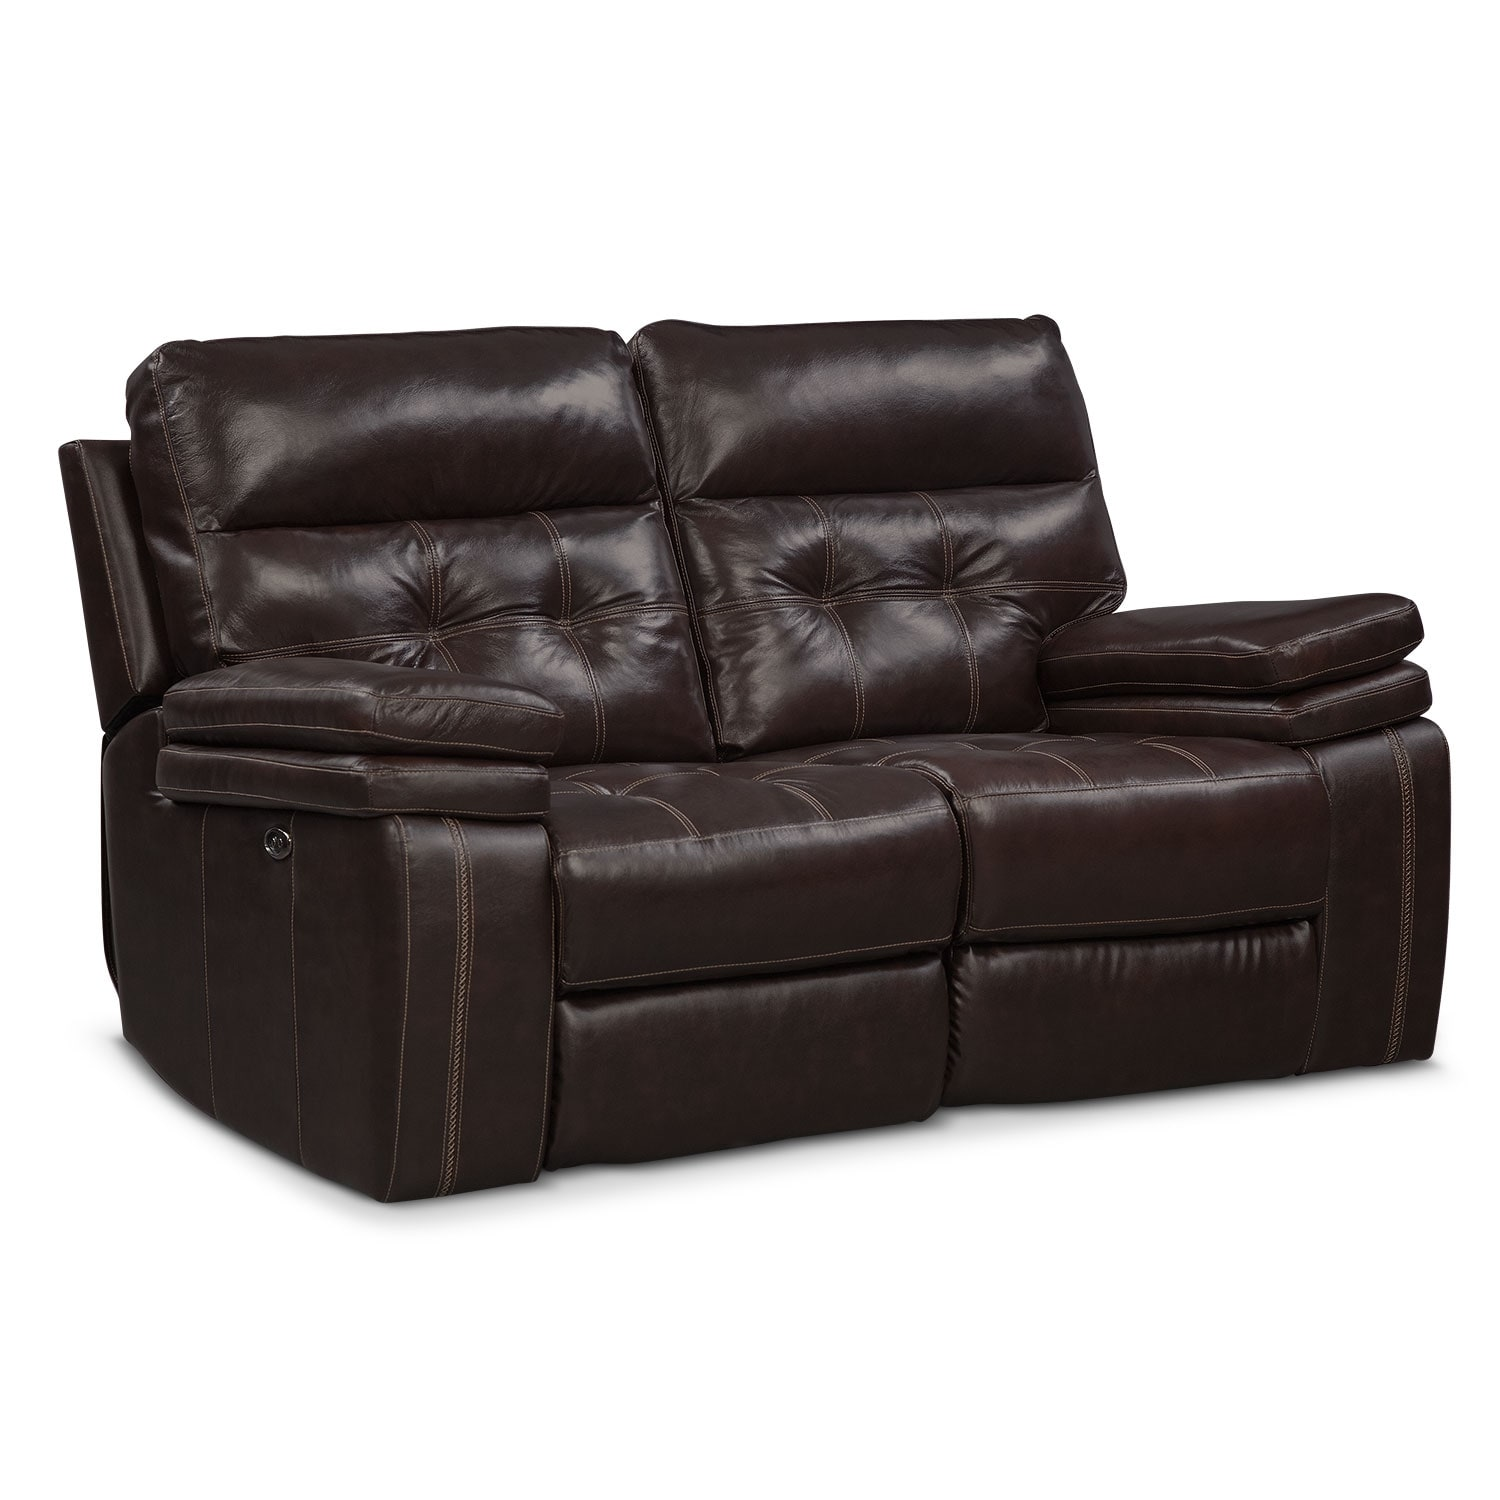 Brisco Power Reclining Loveseat Brown American